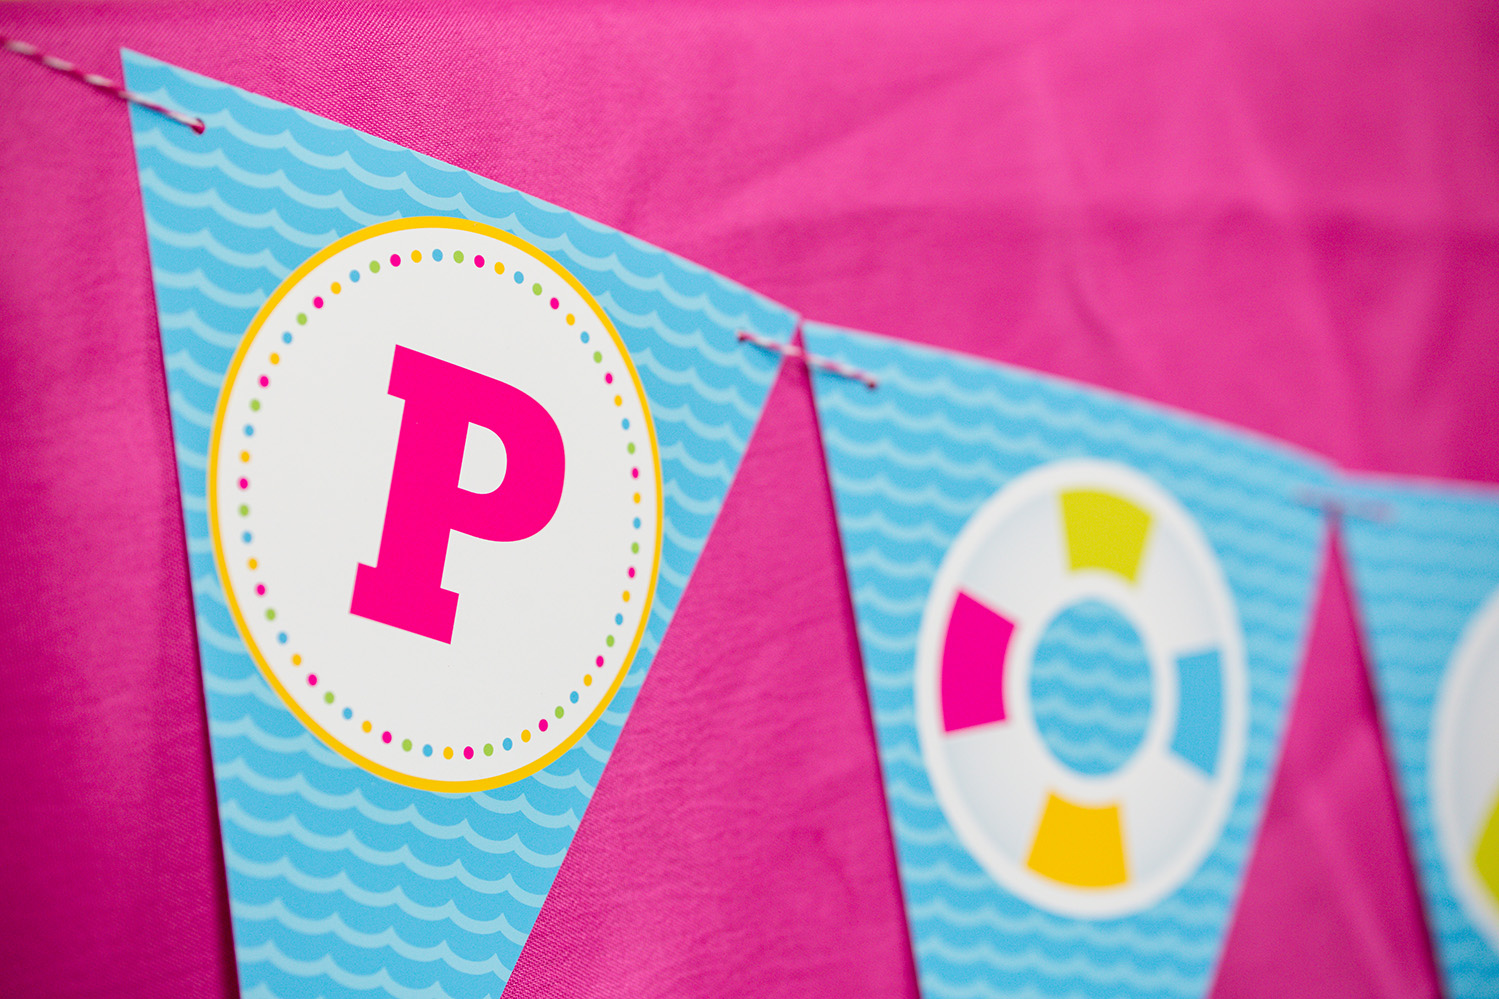 Pool Party Decorations And Invitation Set In Pink